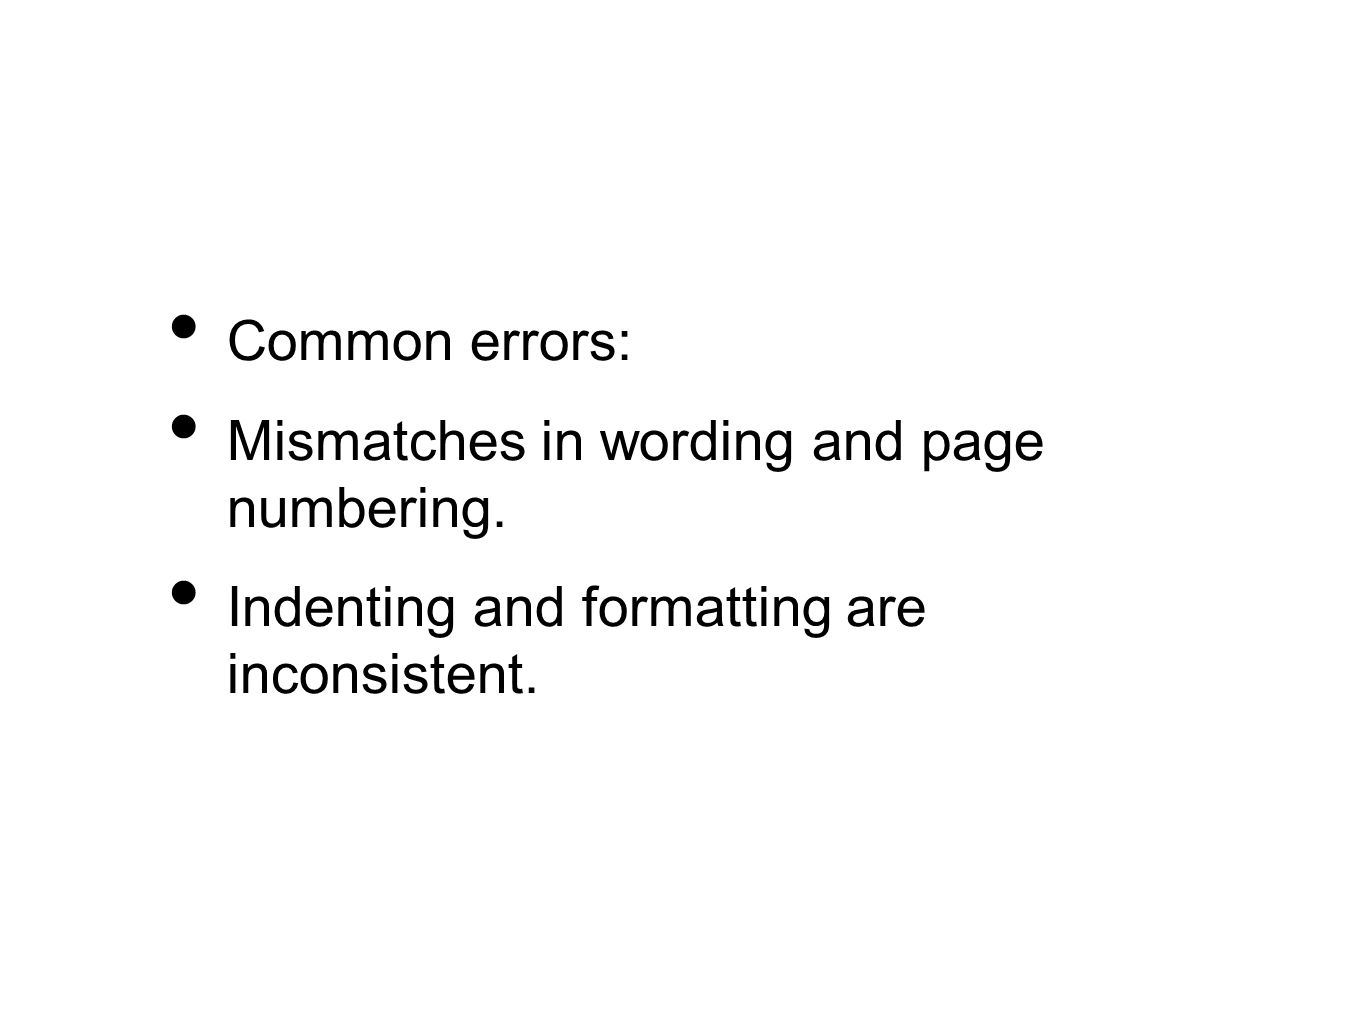 Common errors: Mismatches in wording and page numbering.